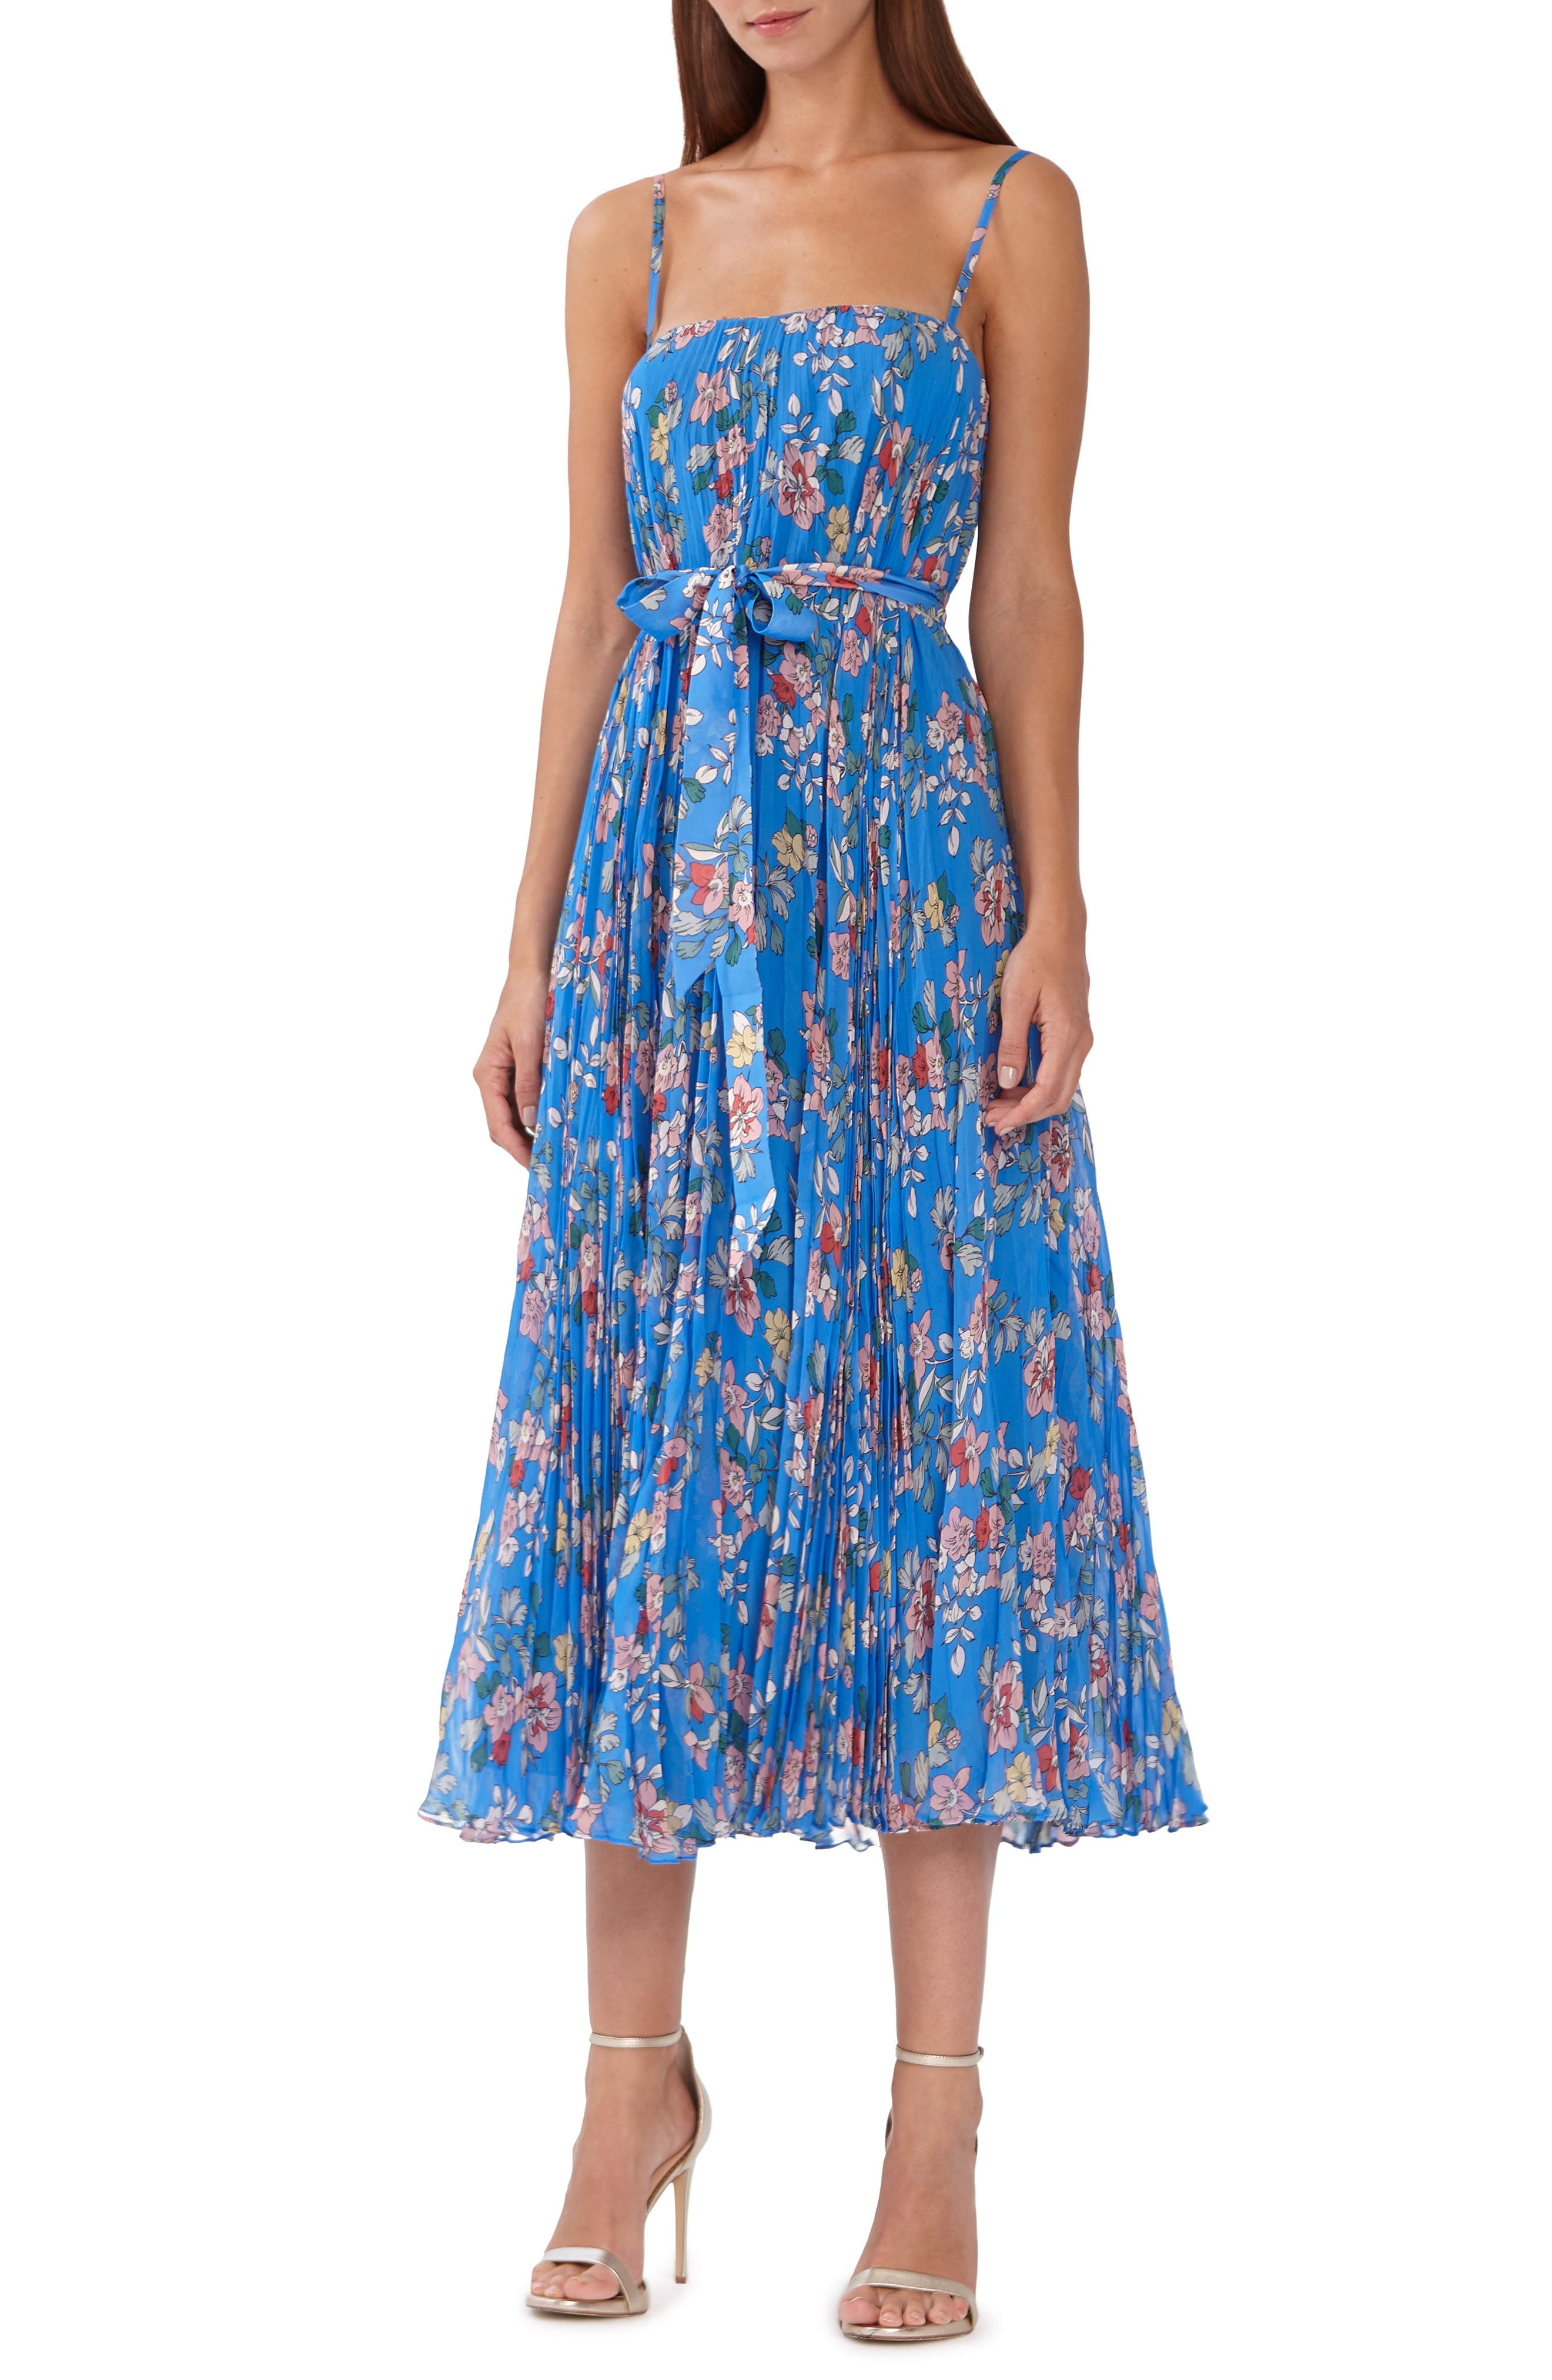 ML MONIQUE LHUILLIER ML Monique Lhuilier Floral Chiffon Midi Dress, Main, color, CAPRI MULTI